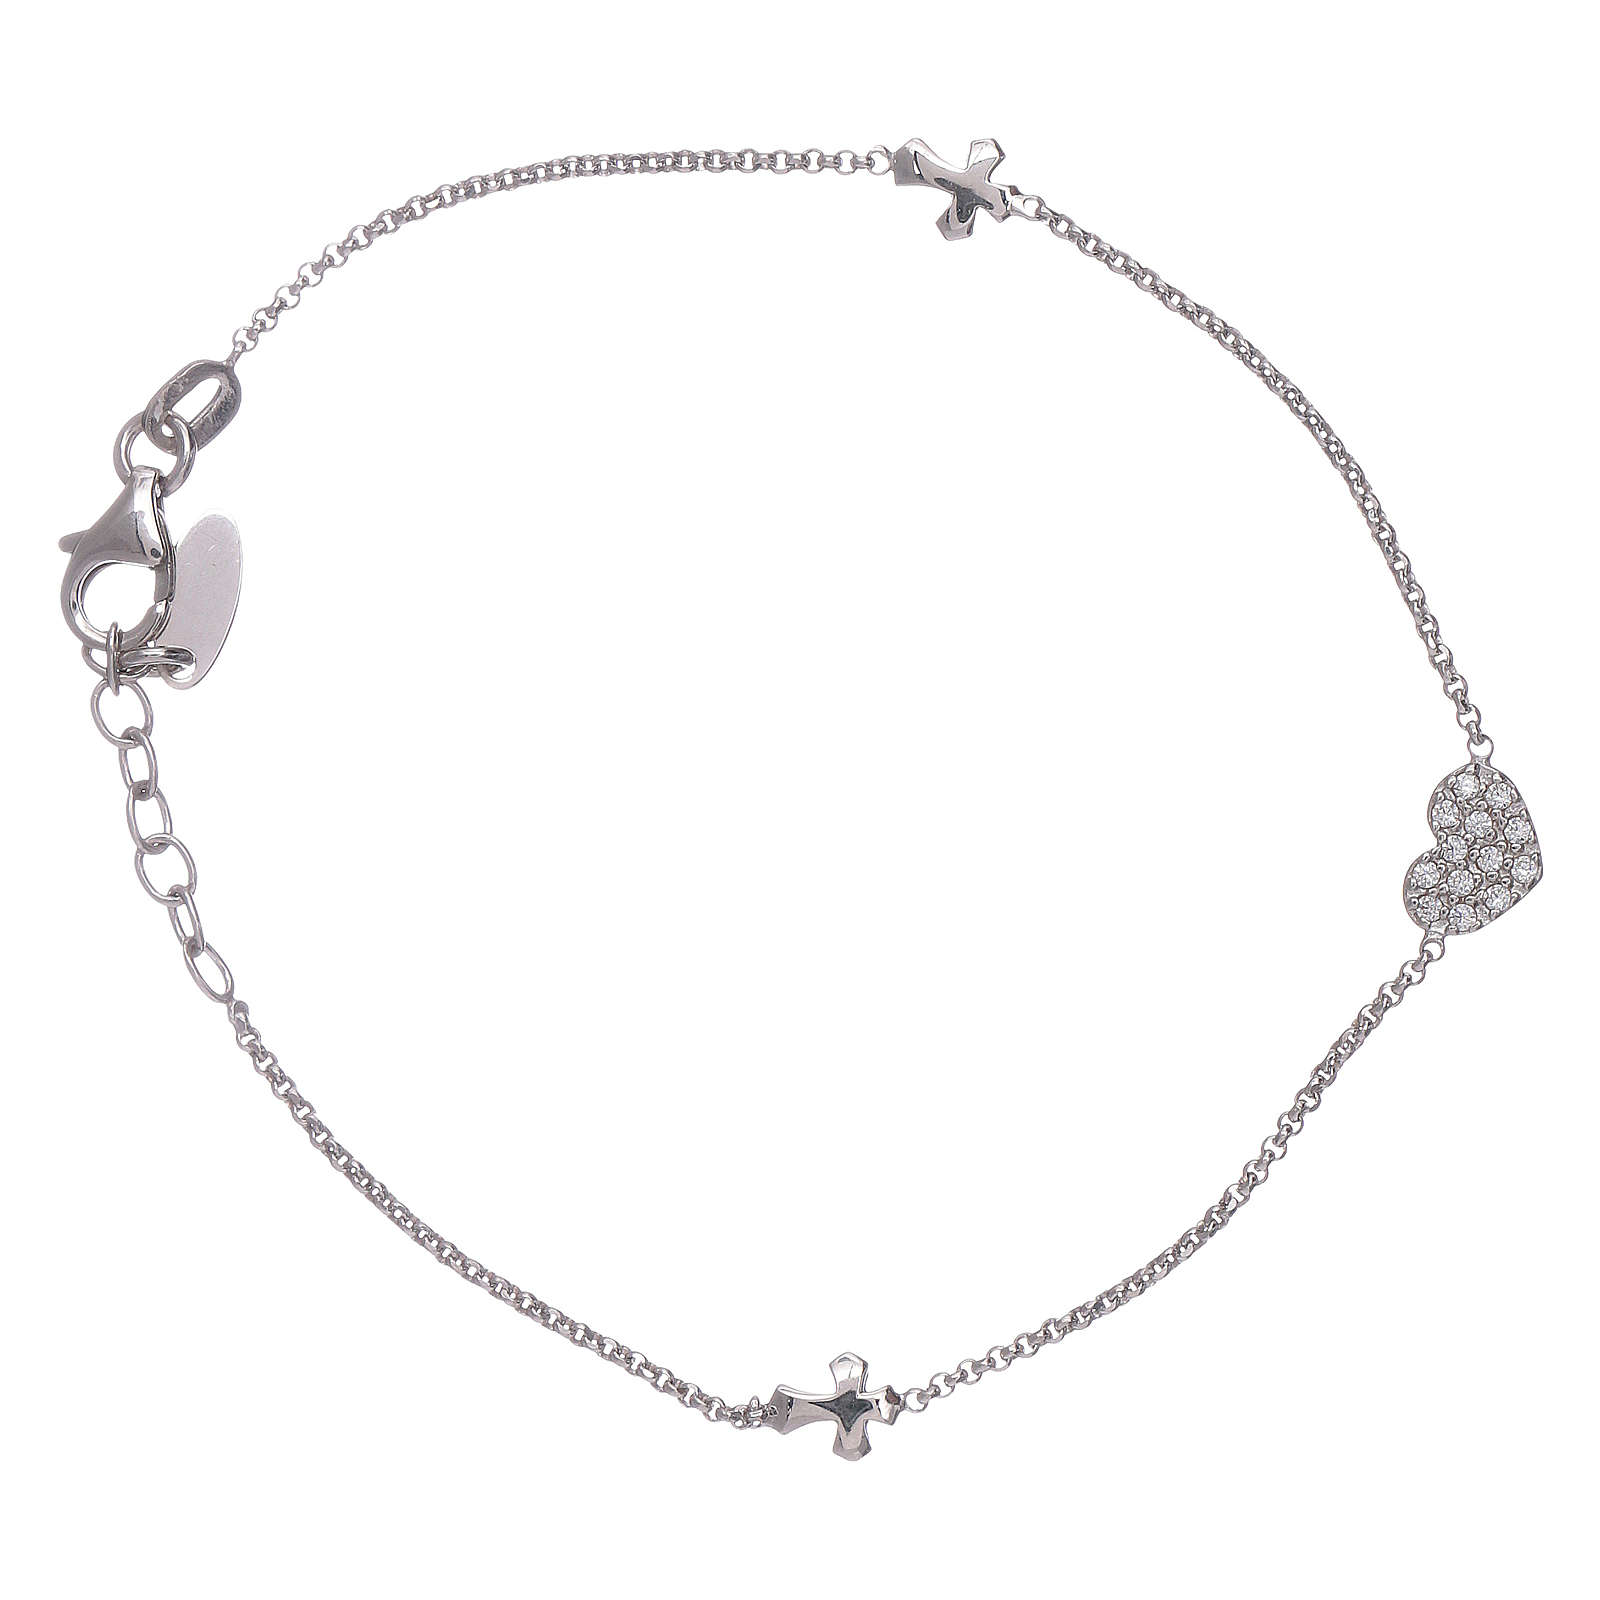 AMEN 925 sterling silver bracelet with a zirconate heart and crosses 4